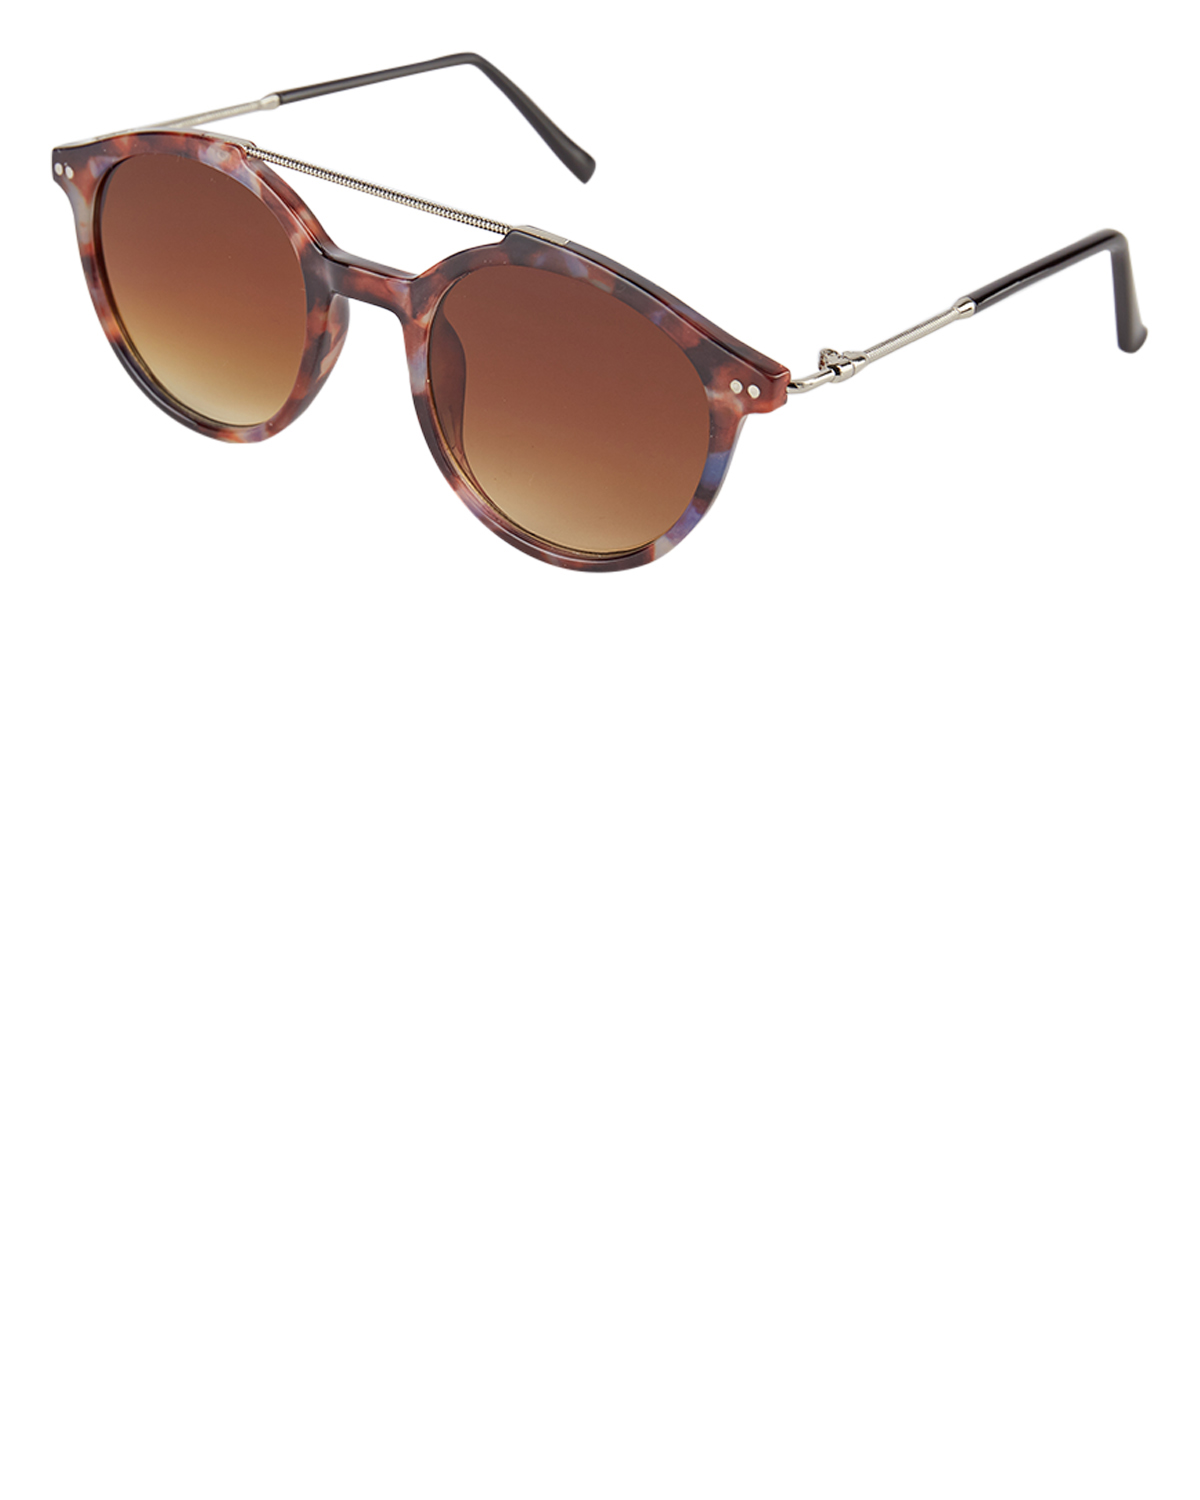 Nümph NuSunio sunglasses, multi